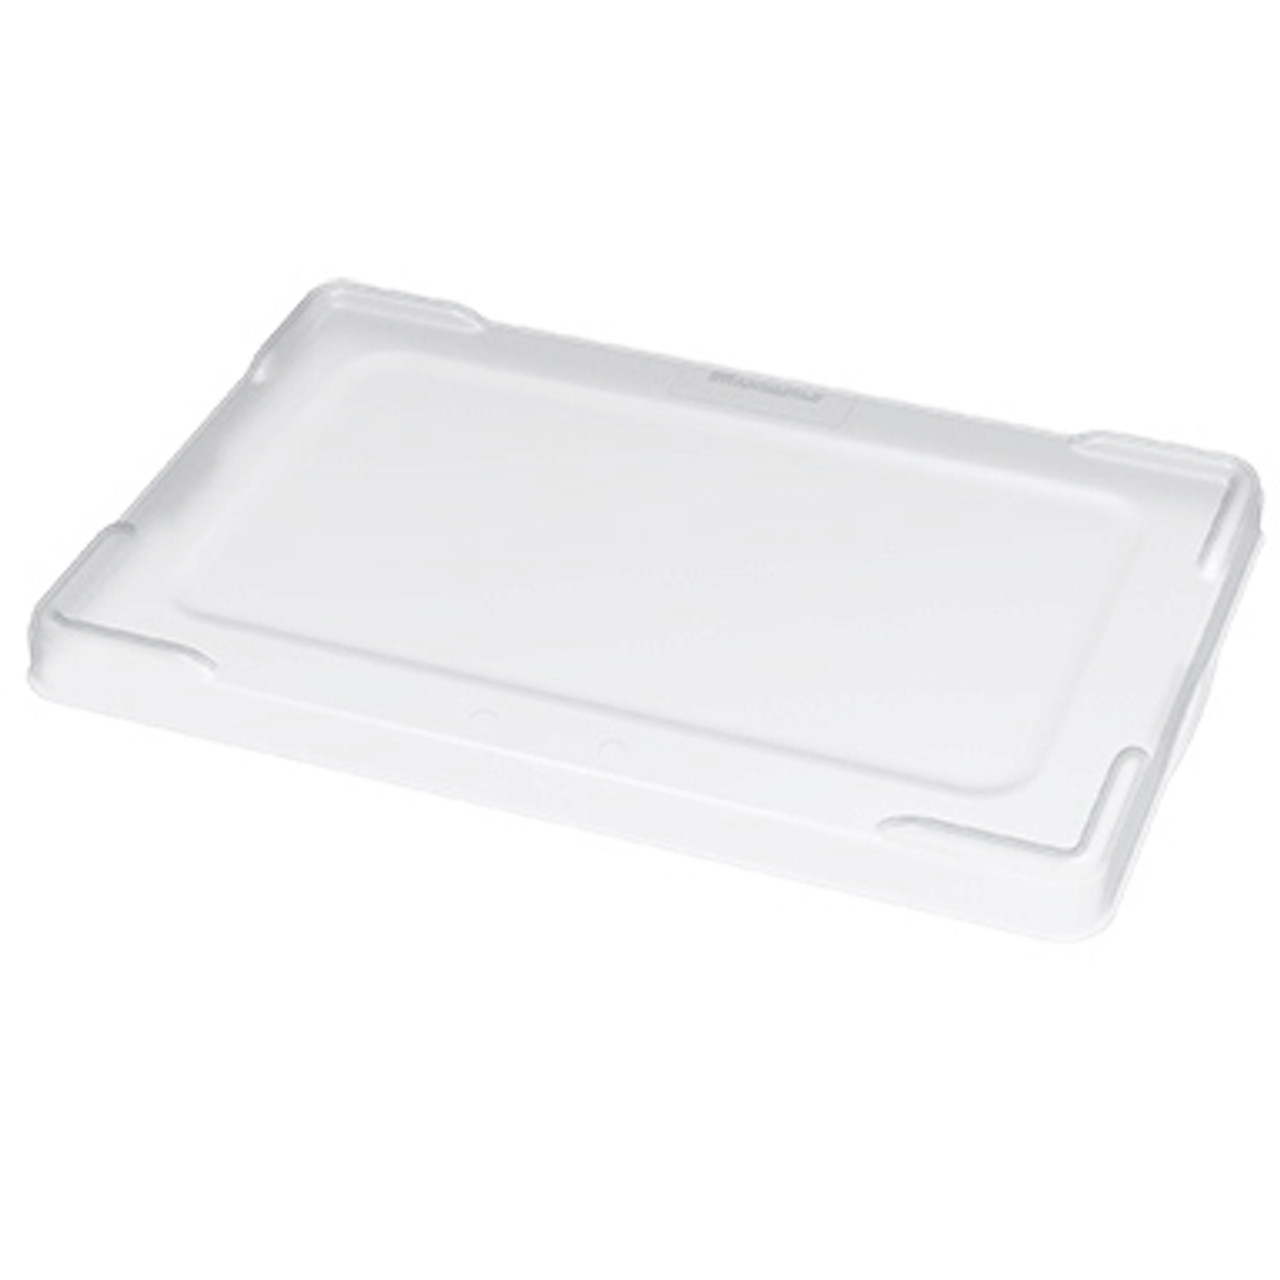 Lid for Akro-Grid, 5 Versions 33061